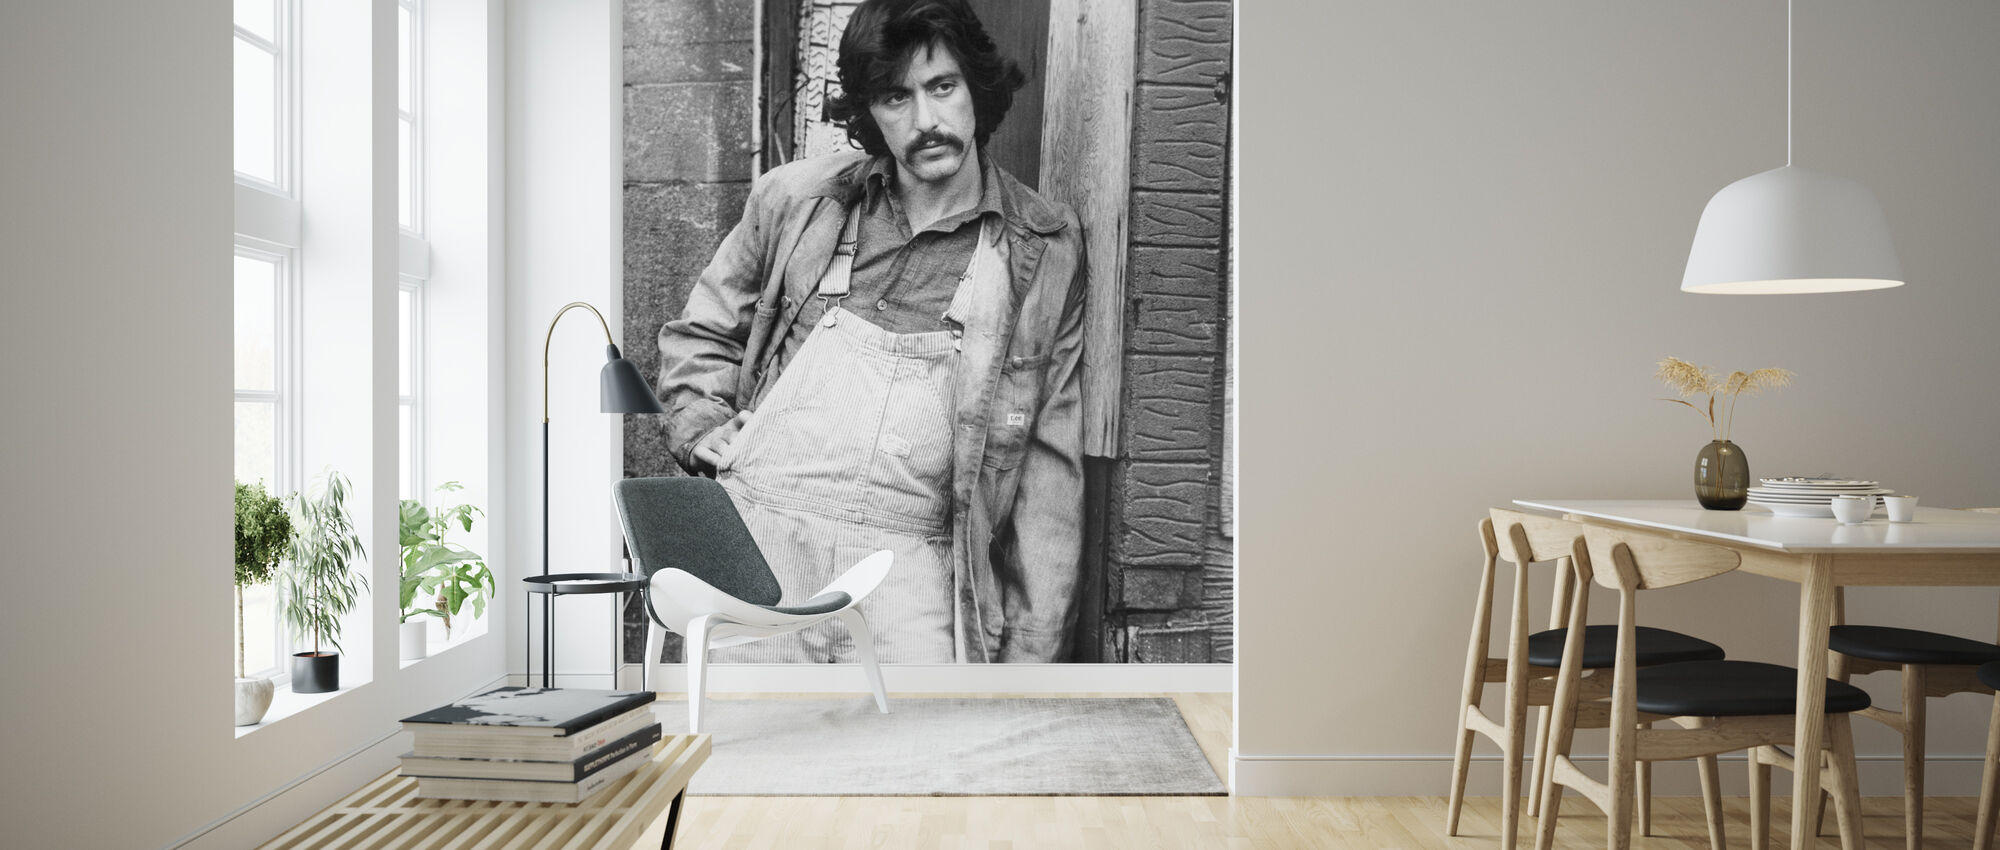 Serpico - Wallpaper - Living Room